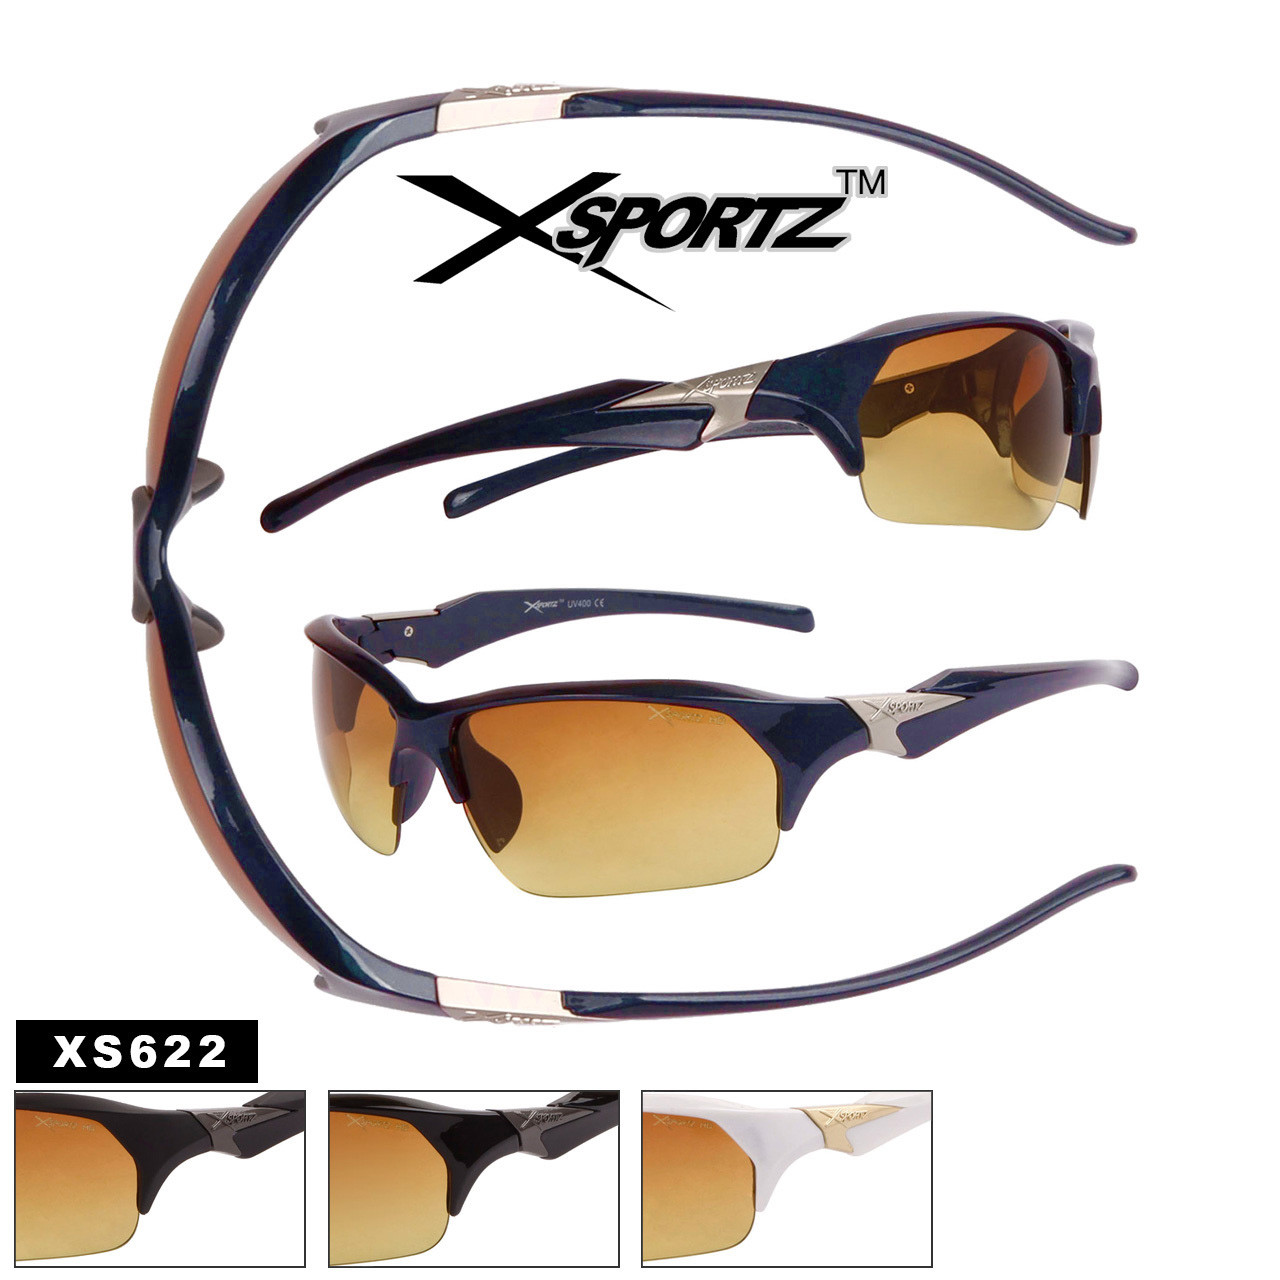 Xsportz™ Sports HD Sunglasses - Style #XS622